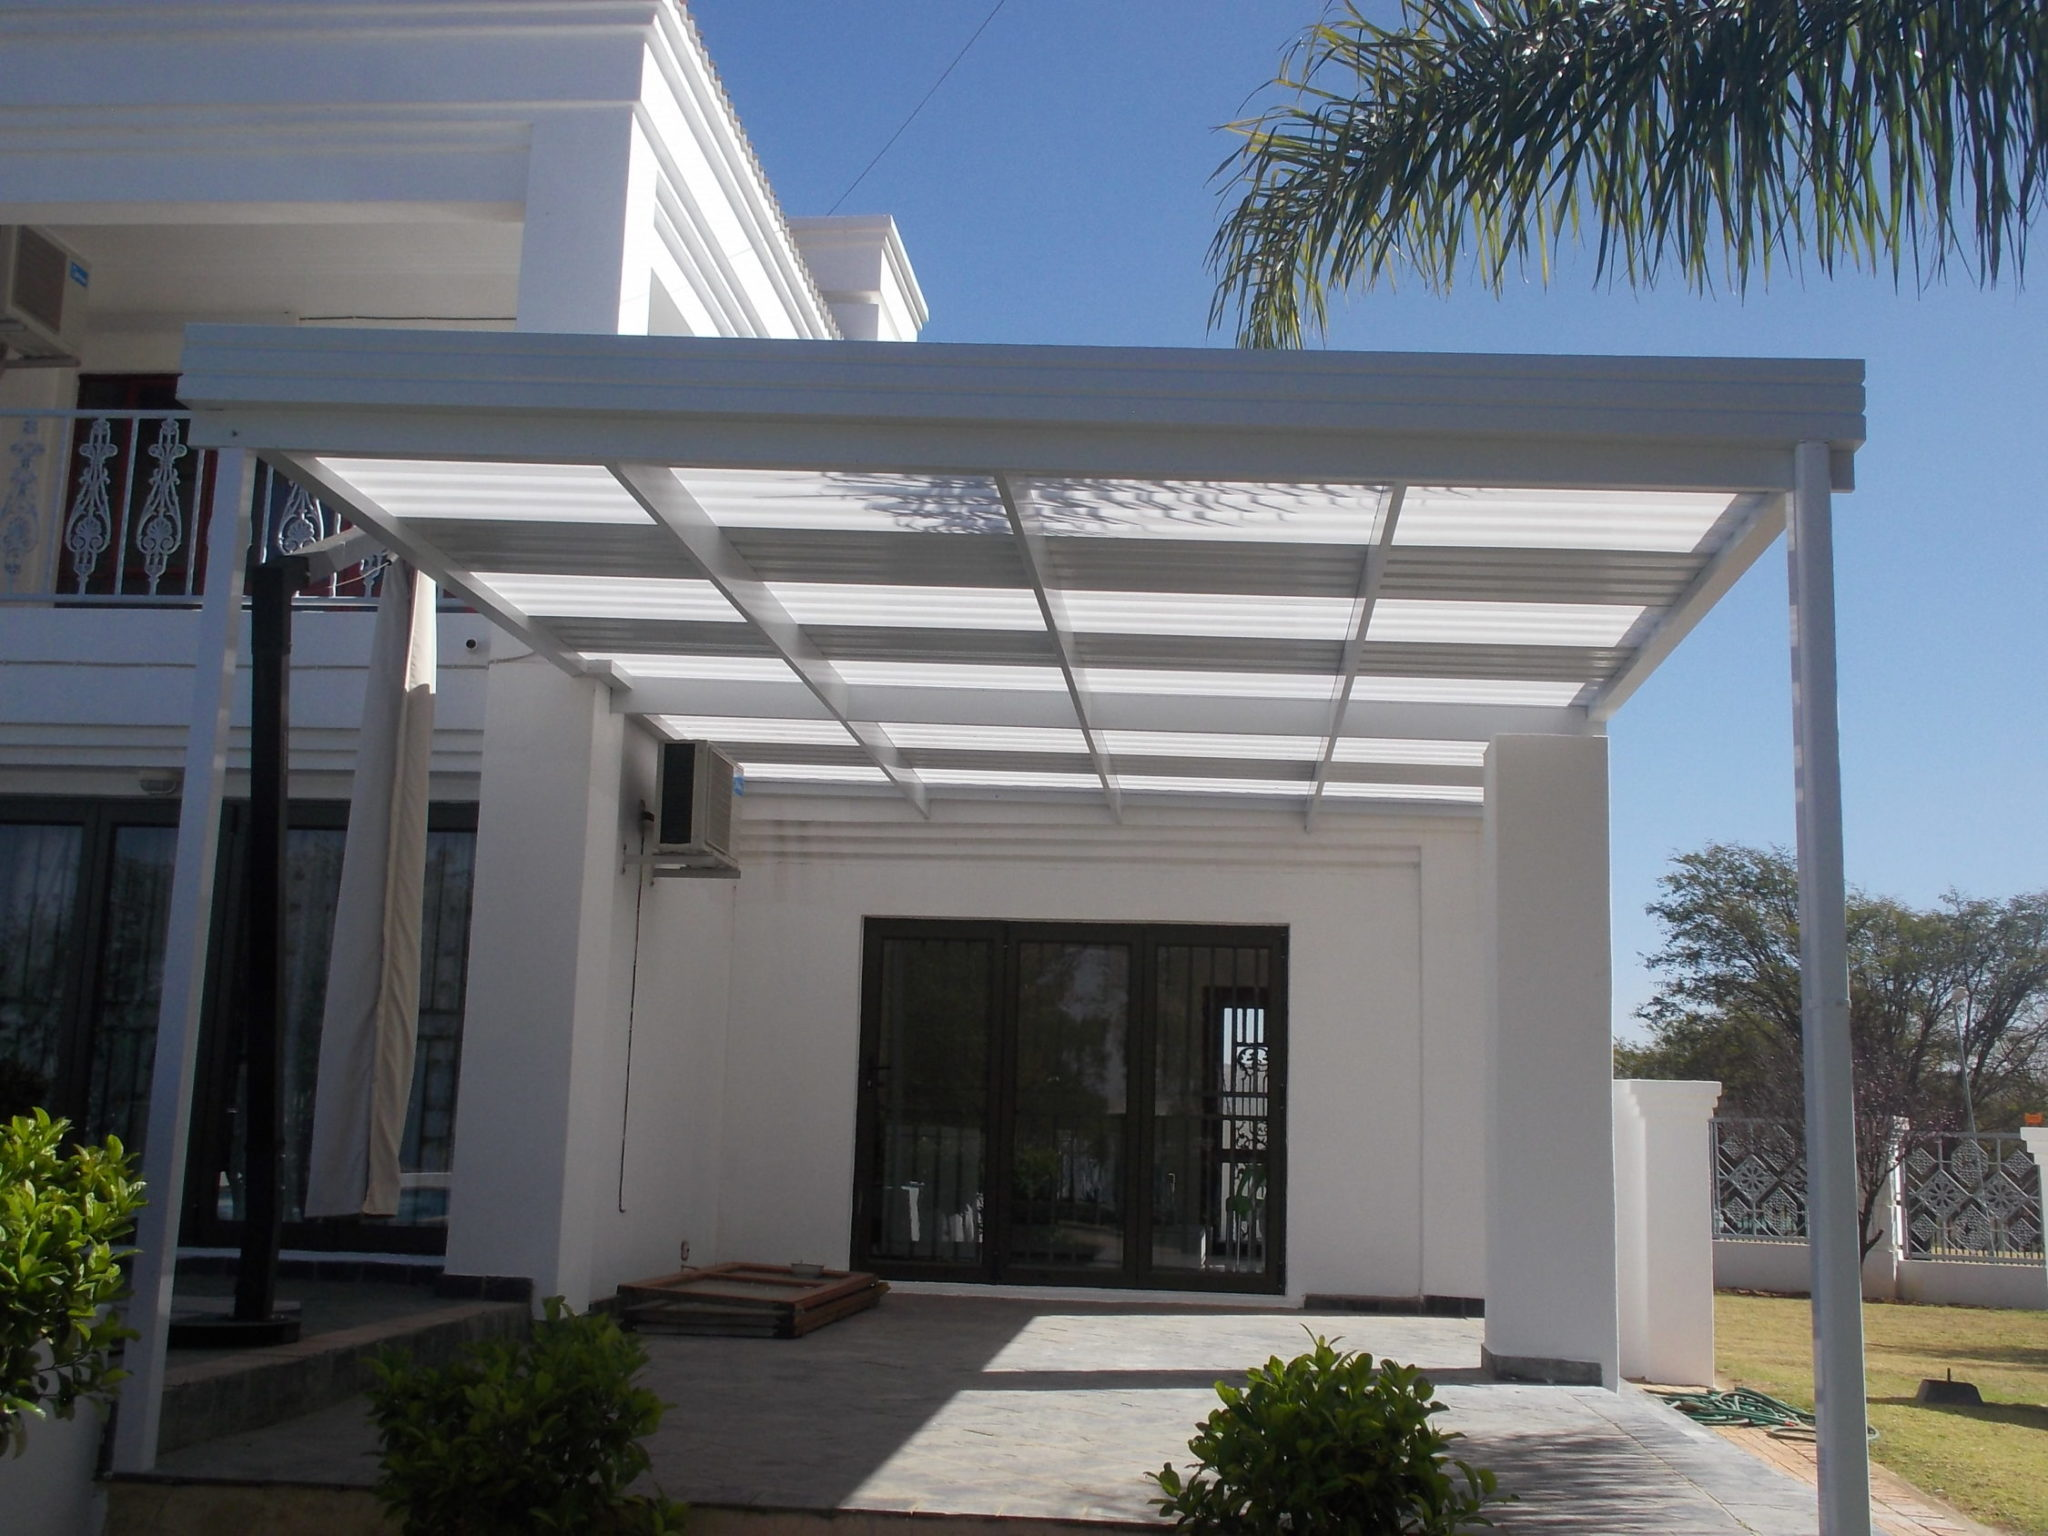 Awning Warehouse High Quality Products Expert Installation